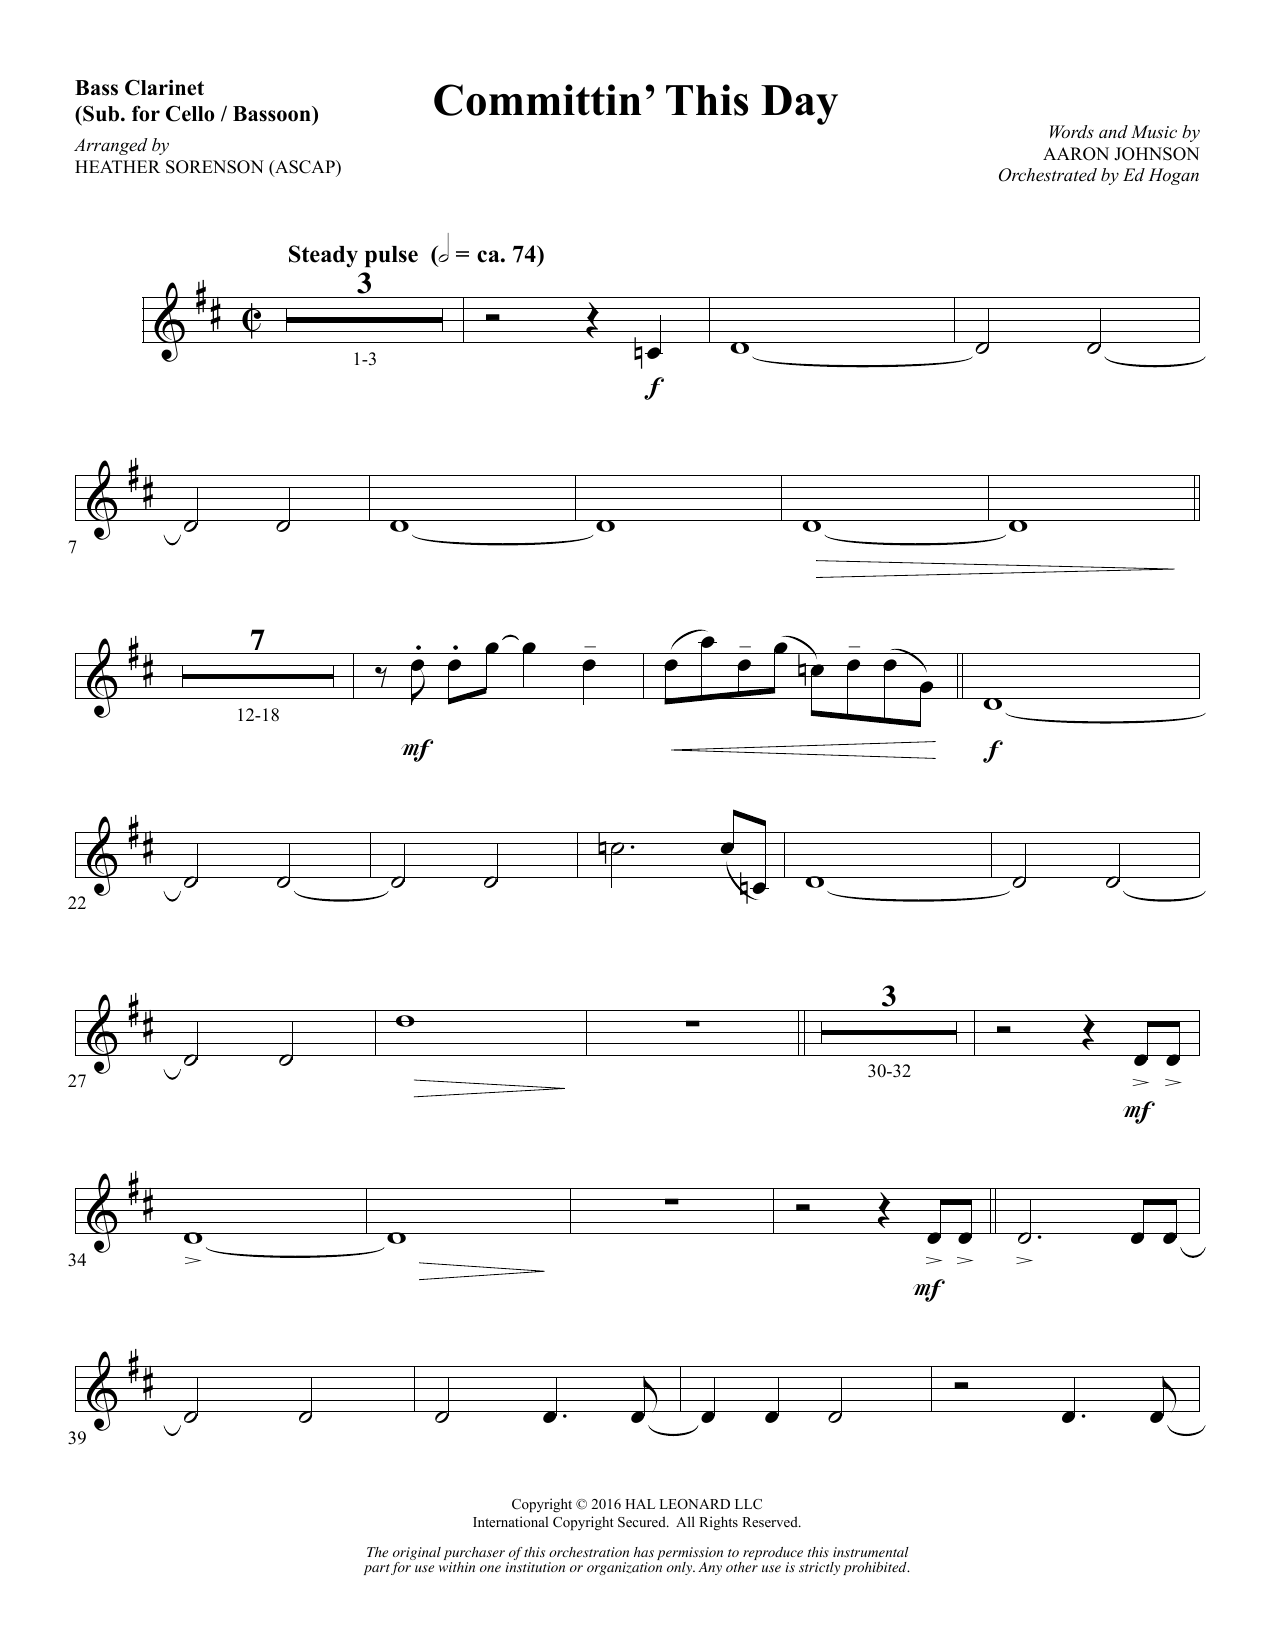 Committin' This Day - Bass Clarinet (sub. Cello/Bsn) Sheet Music